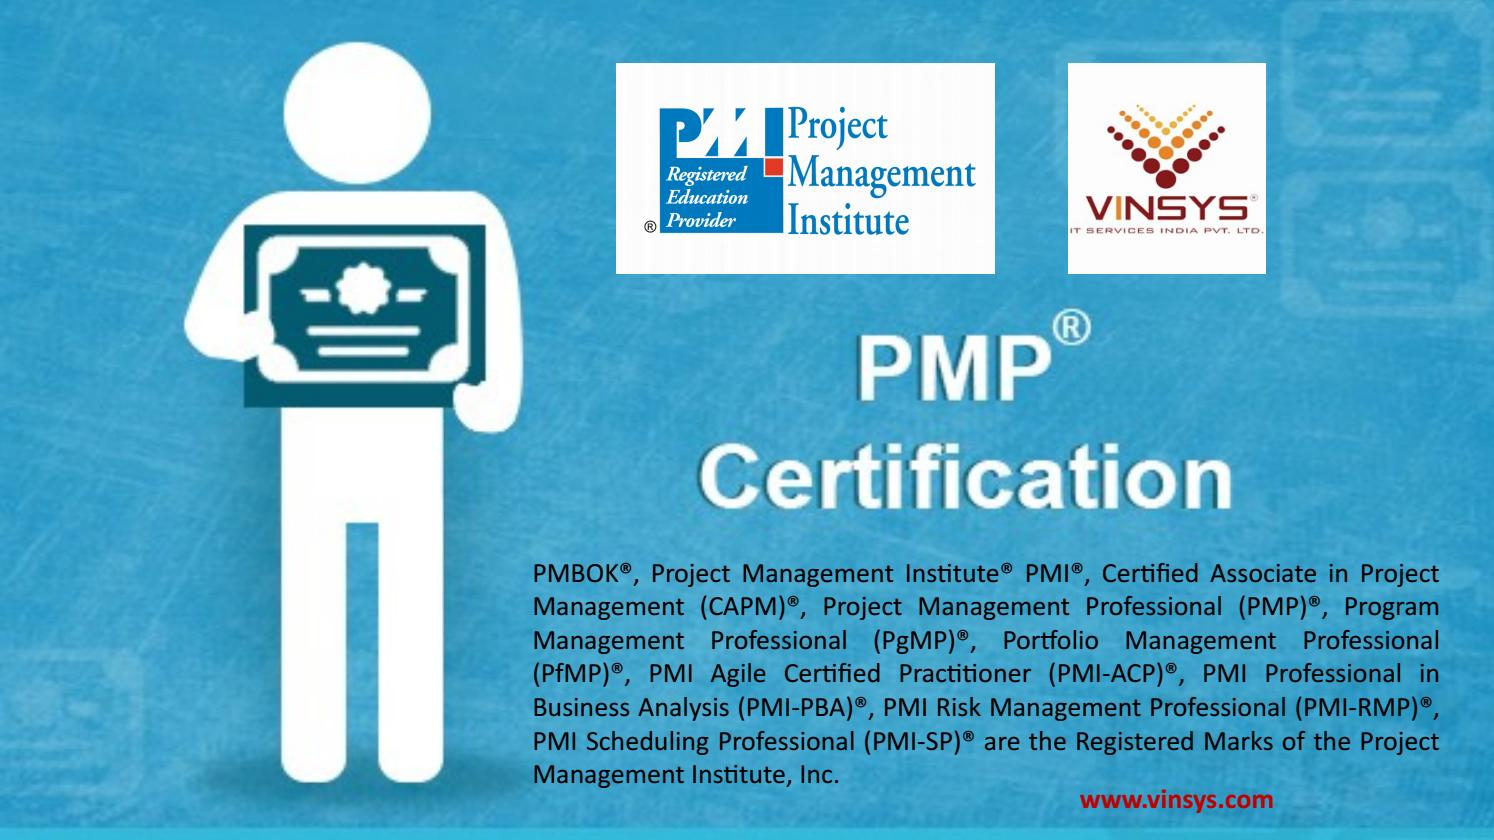 Pmp Certification In Bangalore Pmp Certification Training Bangalore